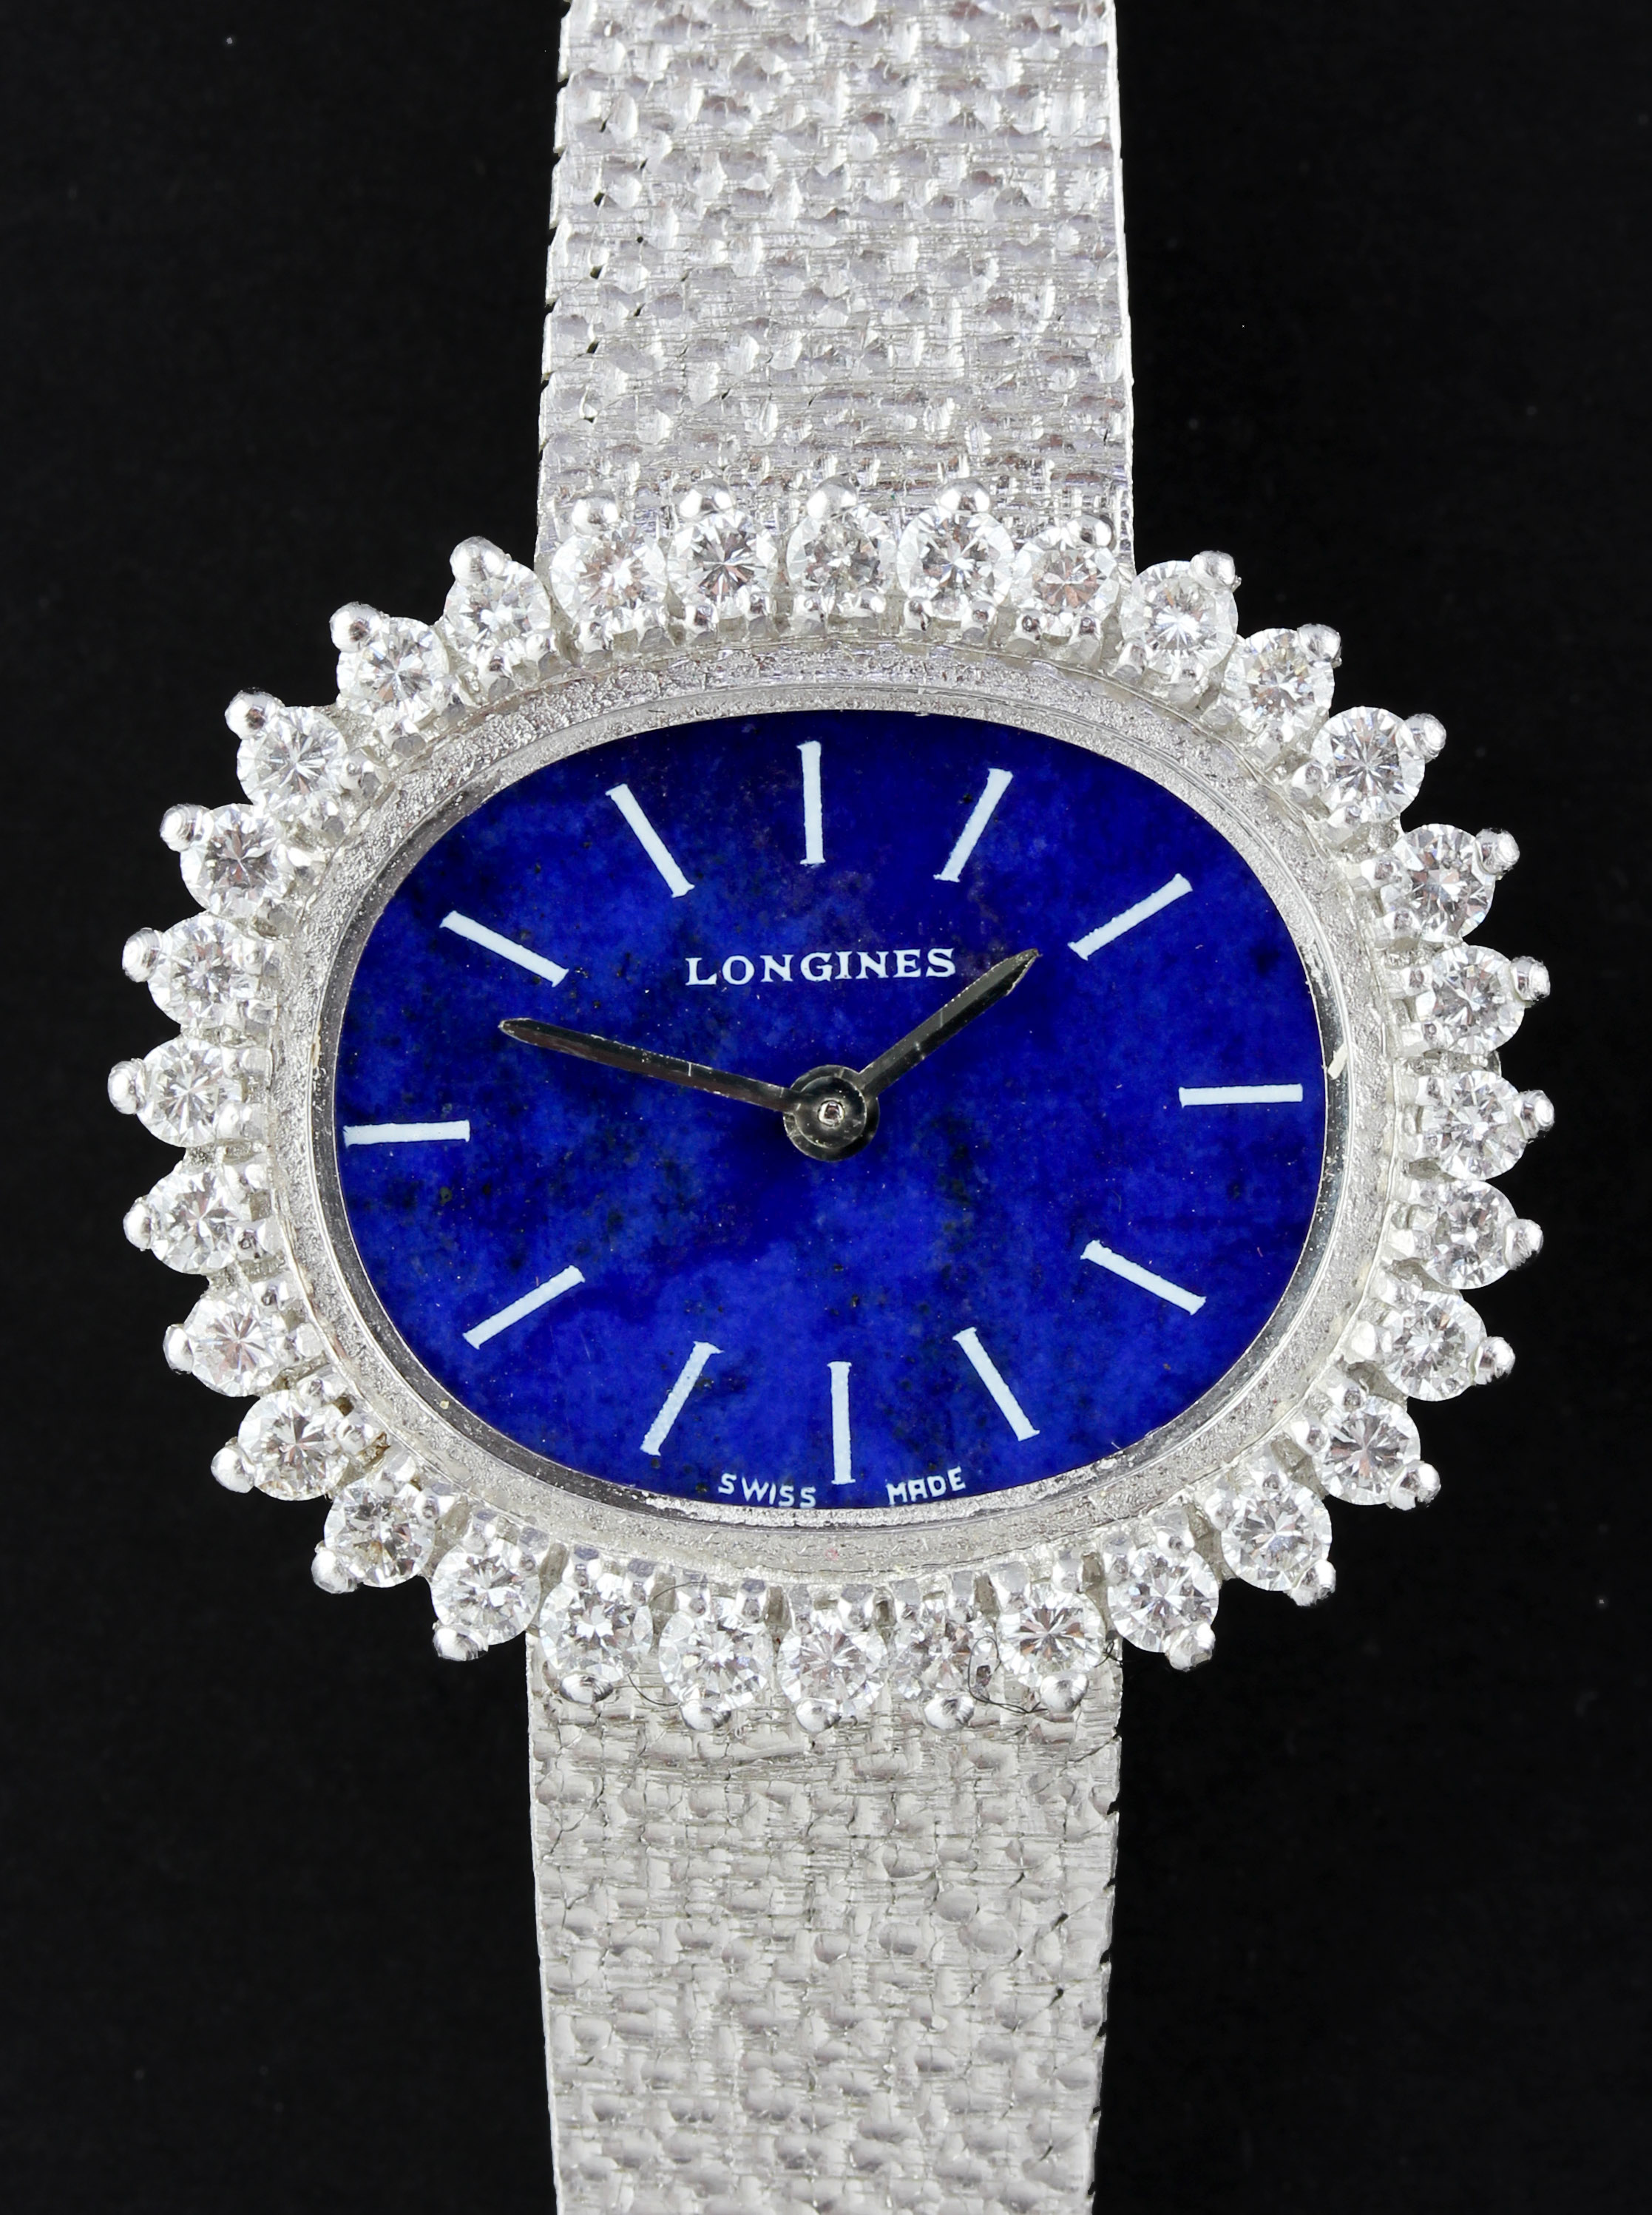 LONGINES Ladies dress watch in white gold with diamonds